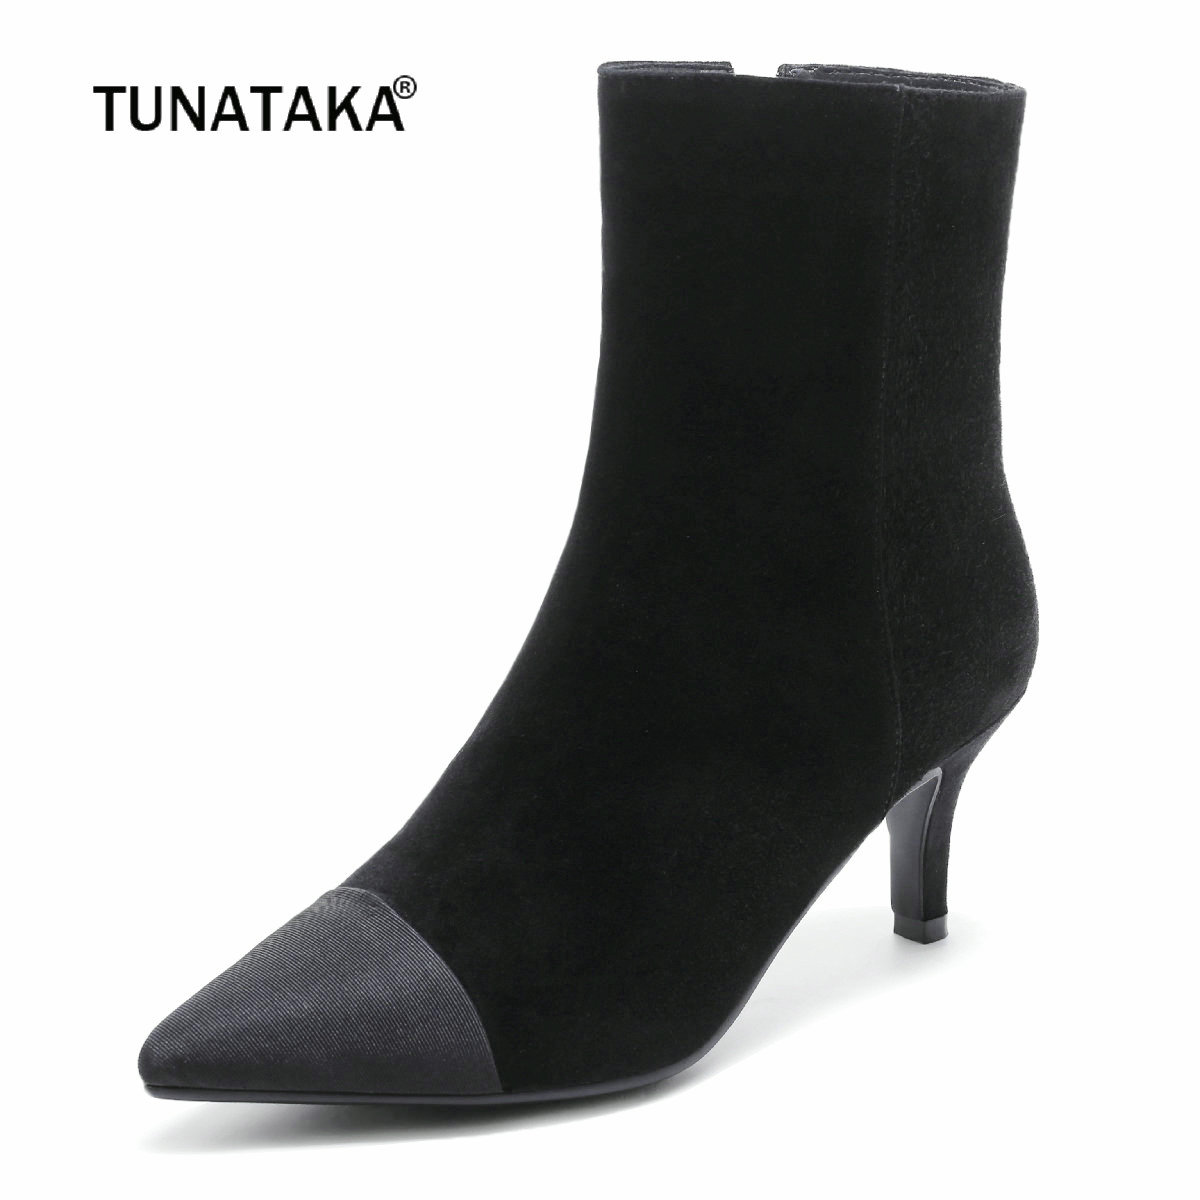 Ladies Fashion Zipper Suede Thin Heels Ankle Boots Women Pointed Toe Autumn Stretch Shoes Black women fashion ankle boots top quality suede autumn slip on pointed toe flats punk suede biker boots ladies shoes wholesales